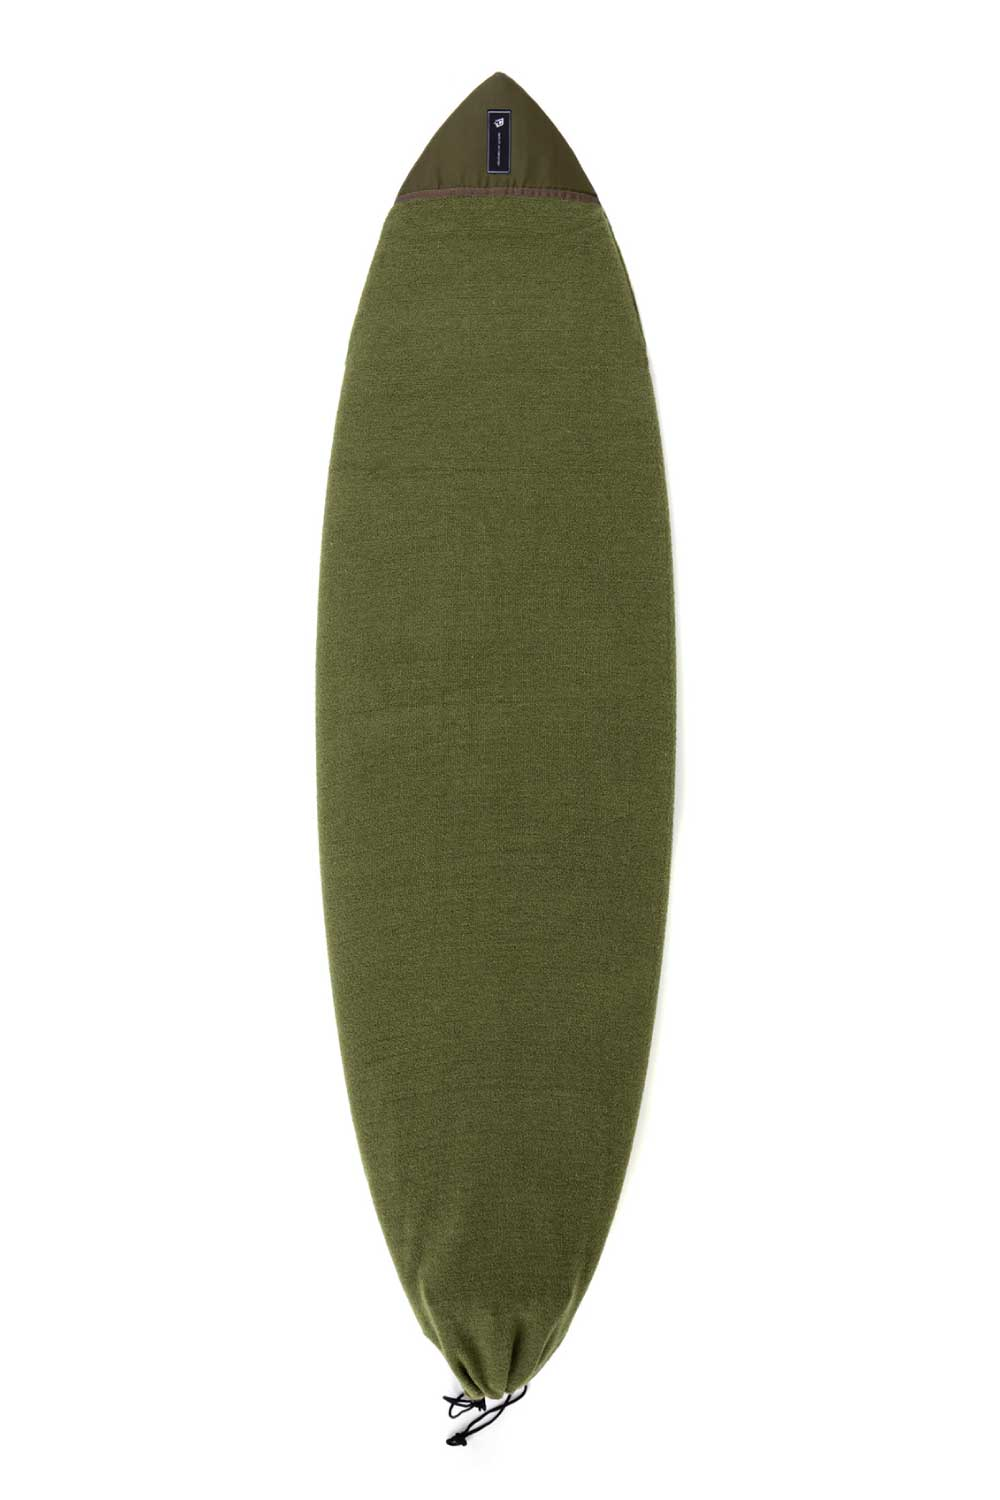 Creatures of Leisure Fish Icon Surfboard Sock (Sox) Military Green Cover